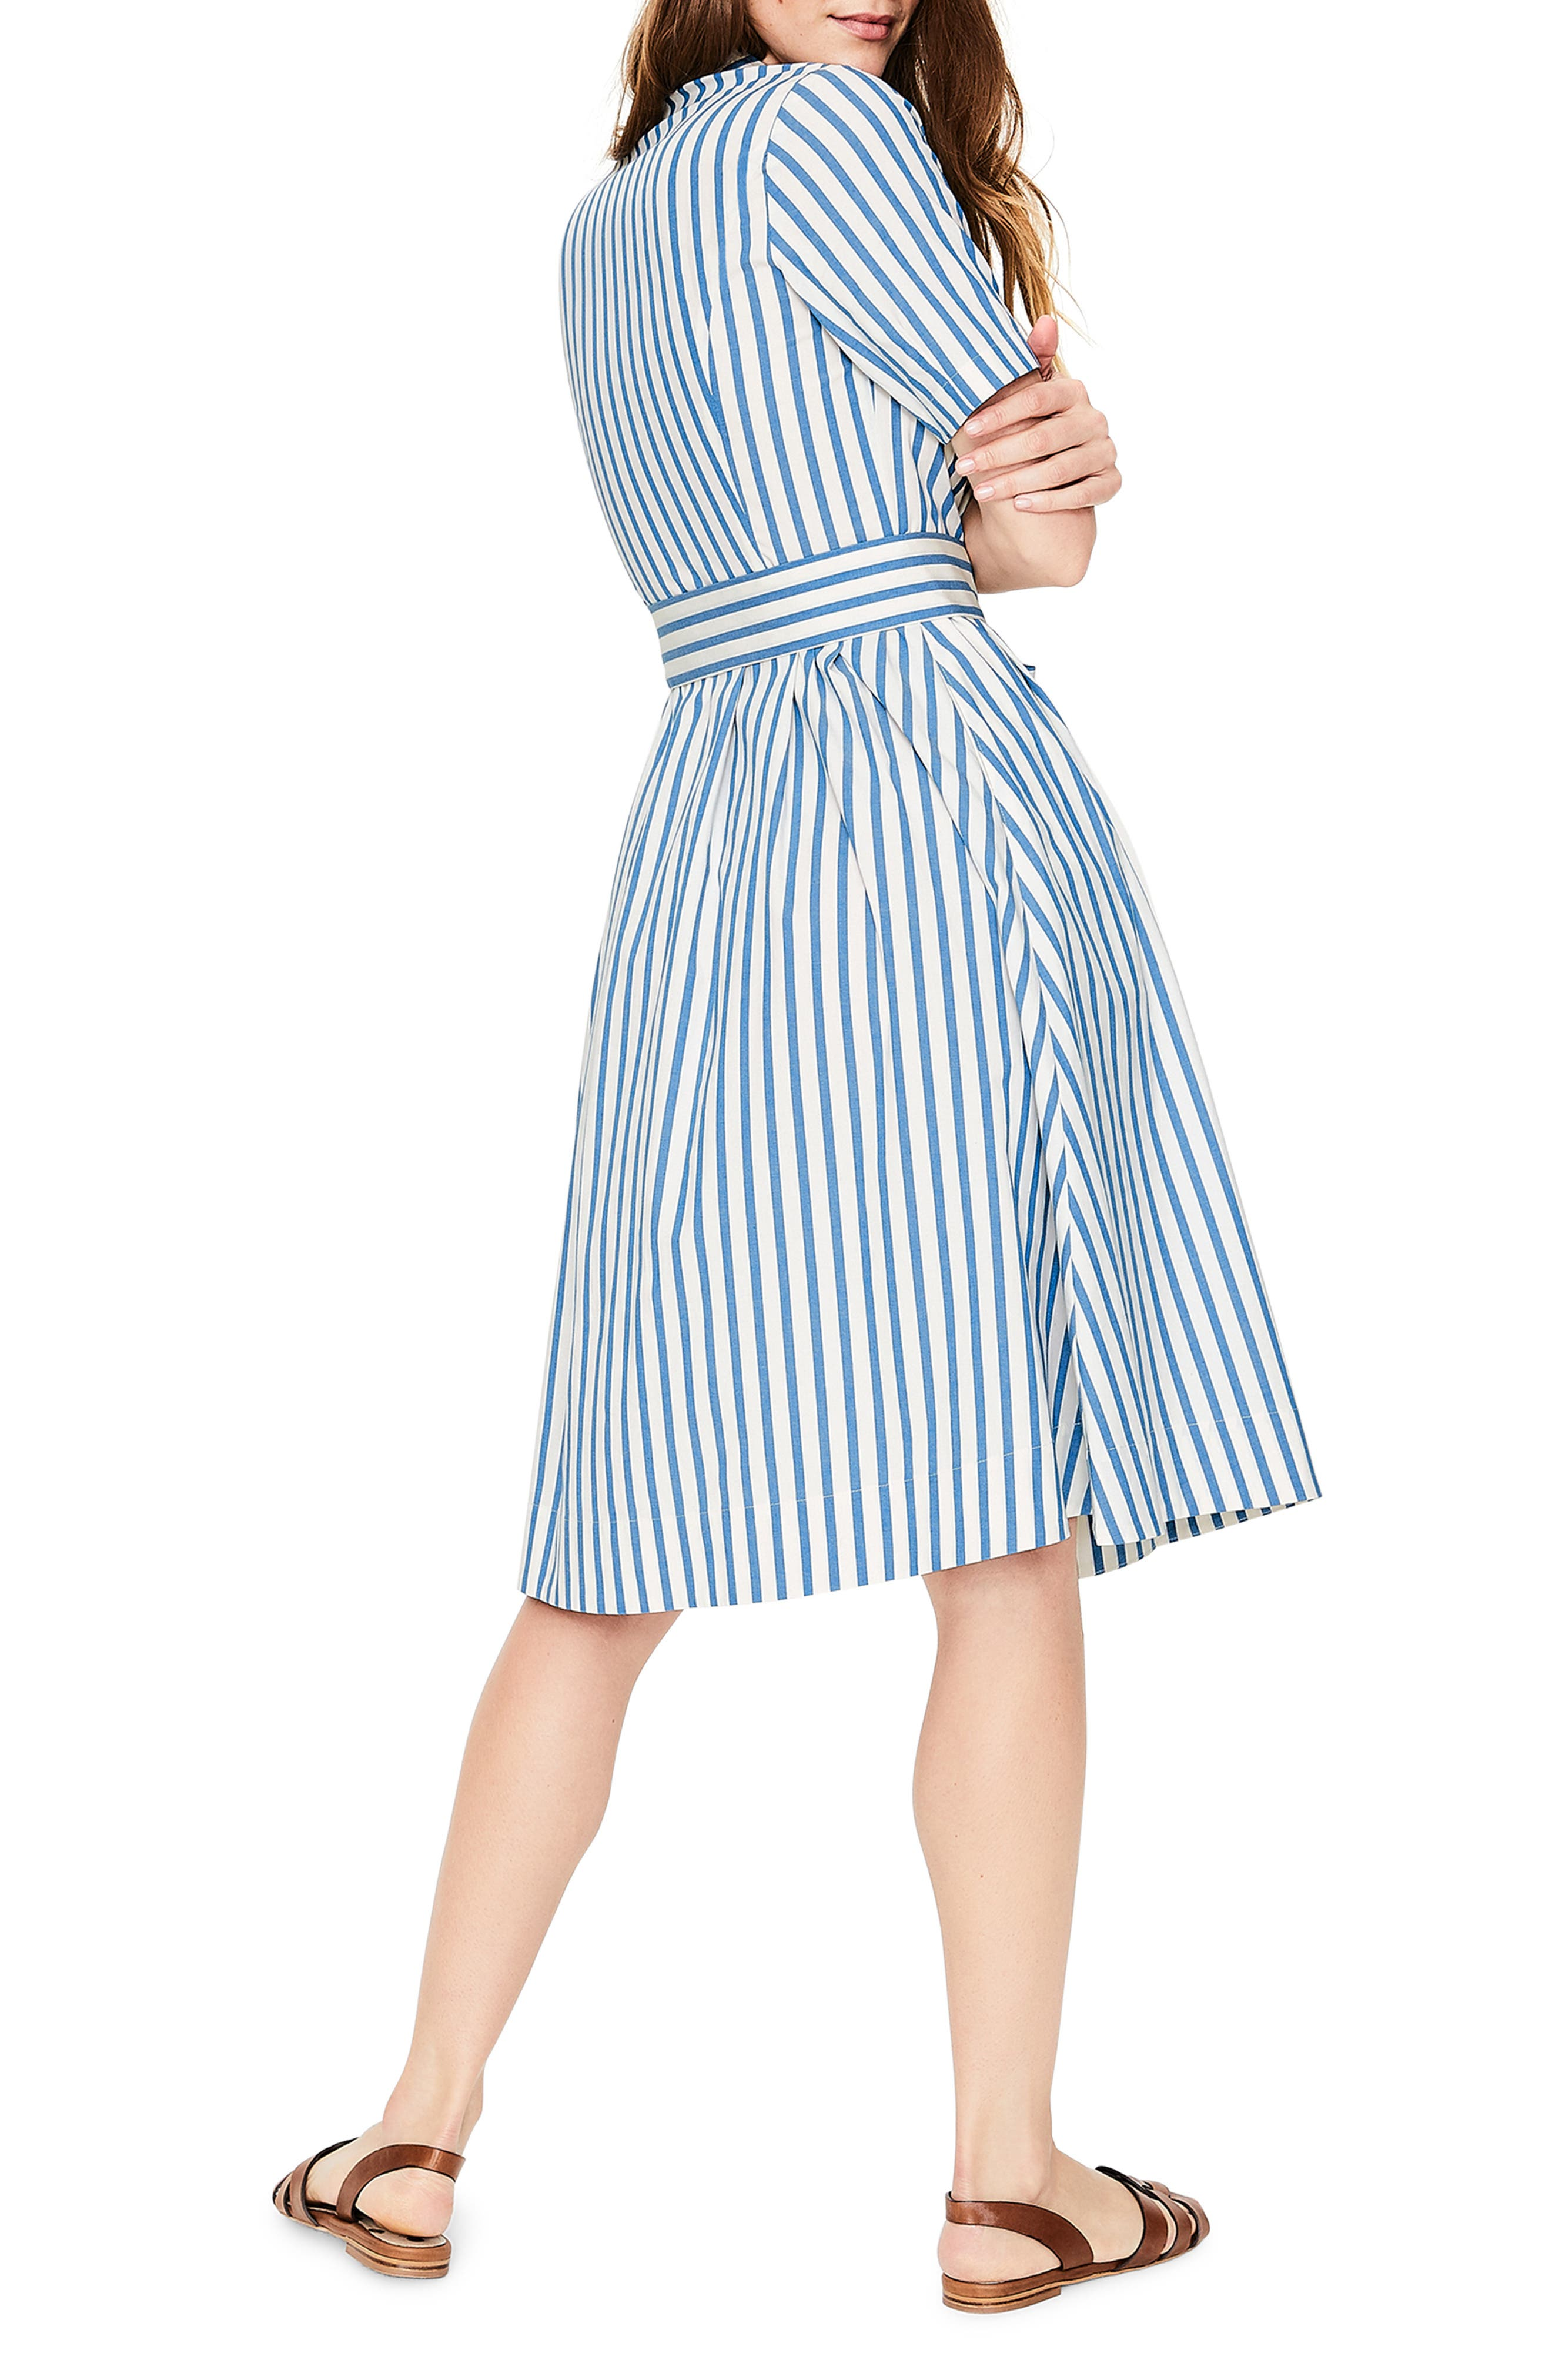 Anastasia Tie Front Shirtdress,                             Alternate thumbnail 2, color,                             IVORY AND CYAN STRIPE